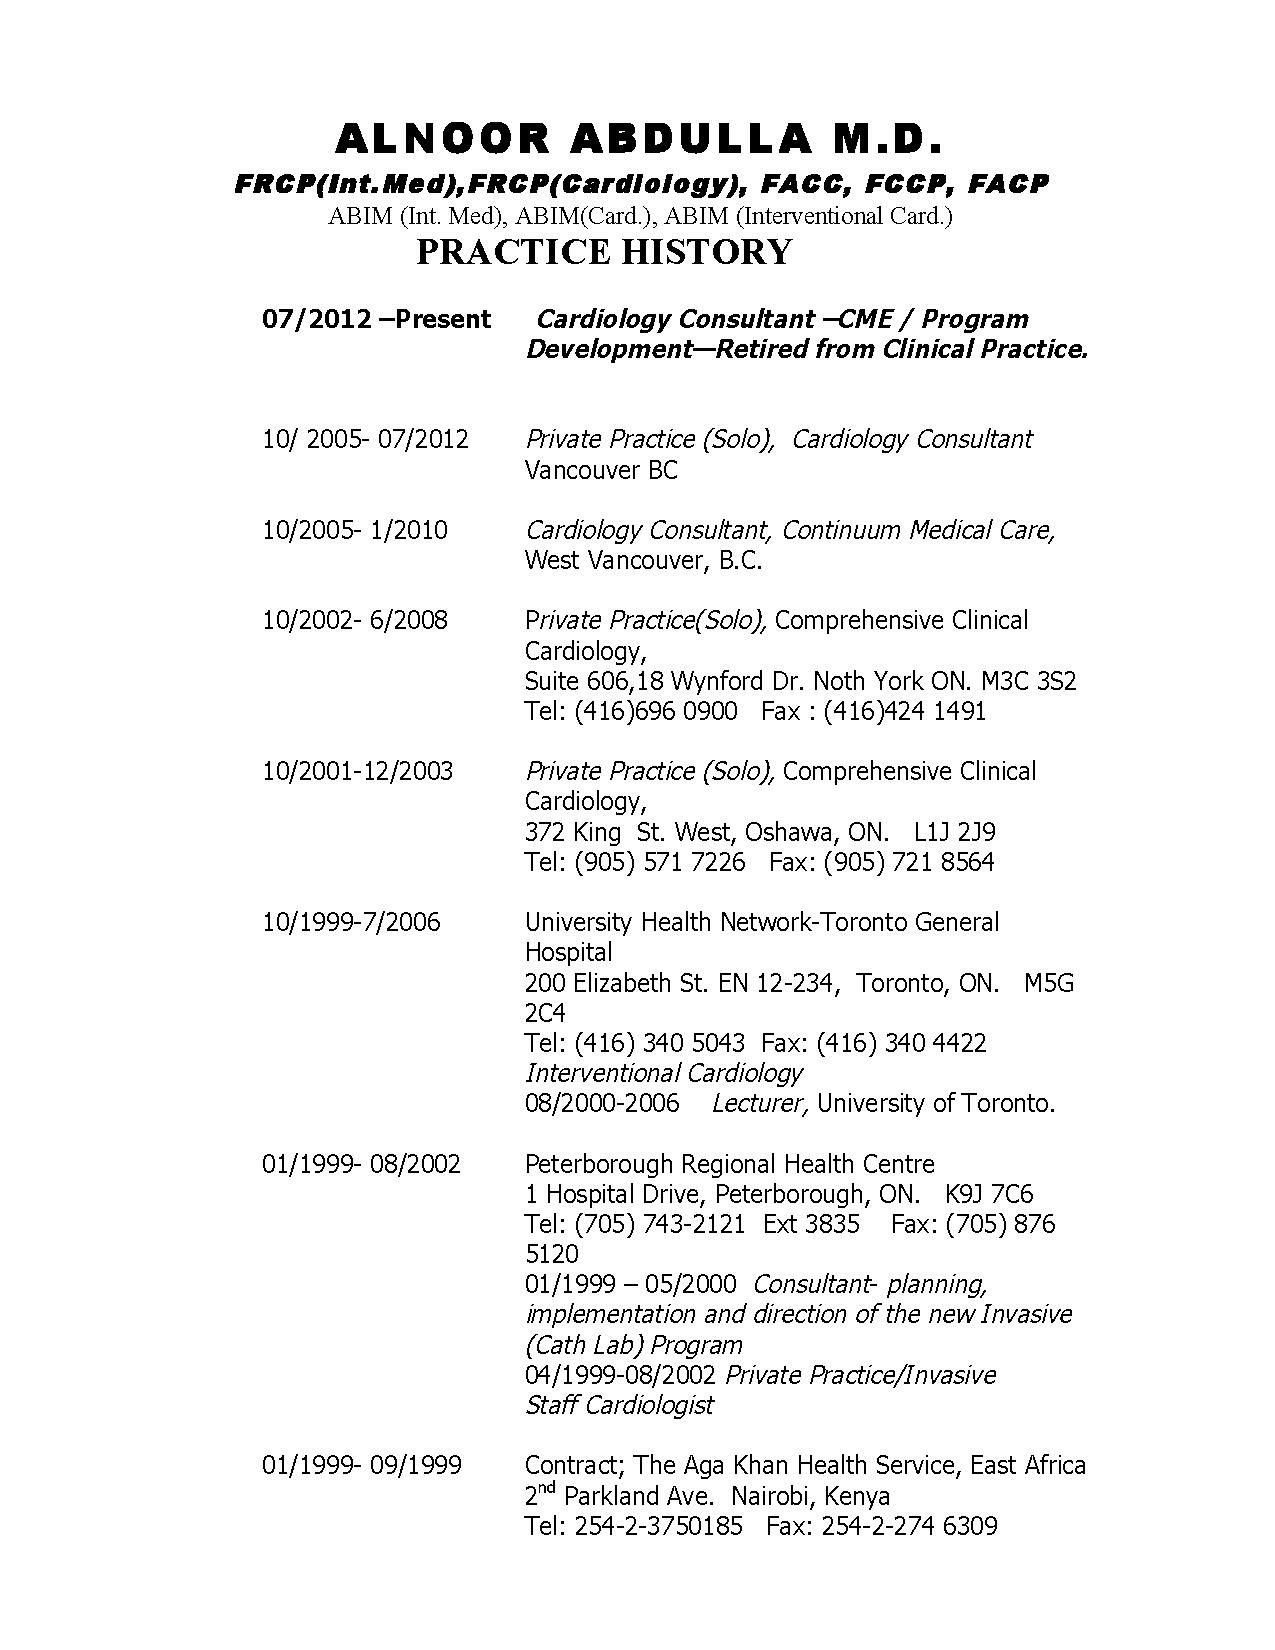 Practice History of Dr. Abdulla 2015